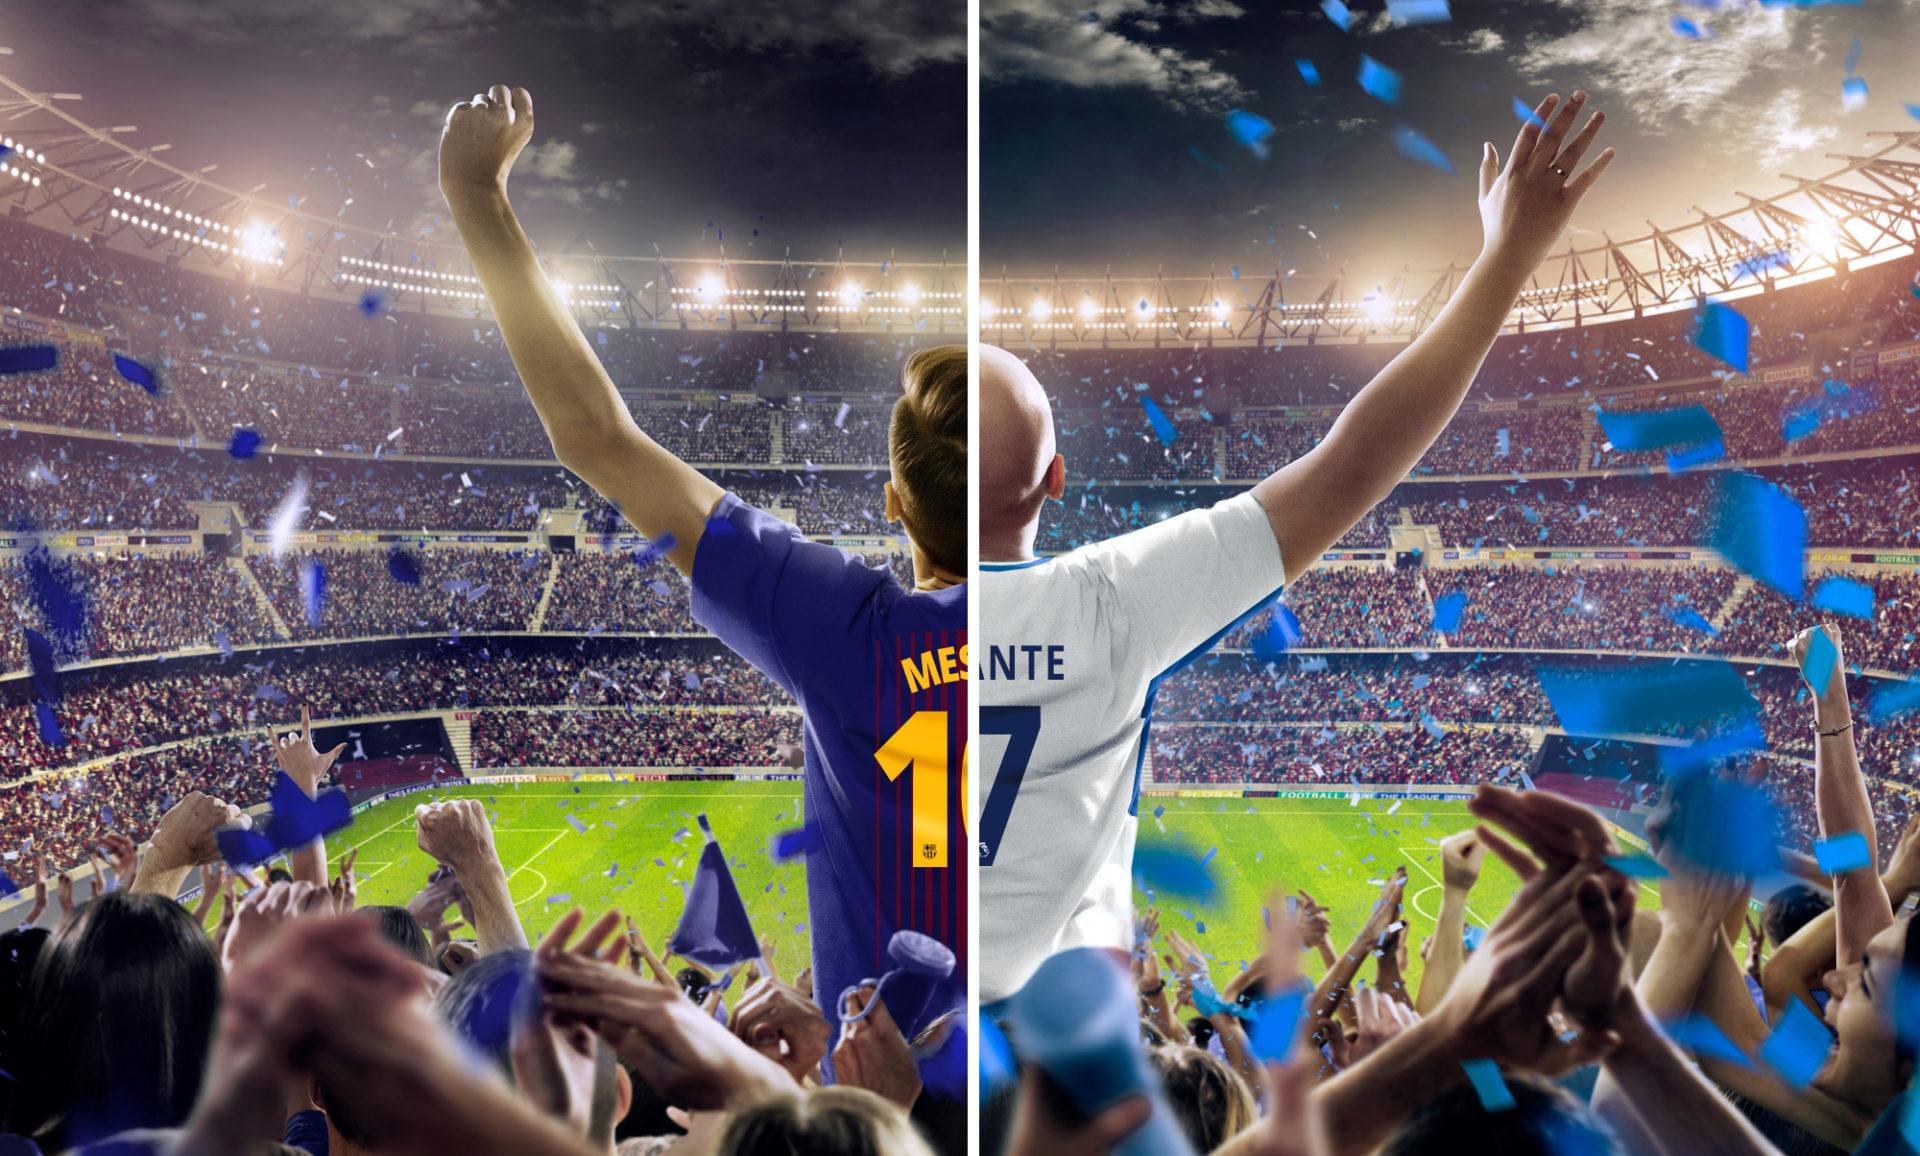 Barcelona vs Chelsea (Champions League) – Fly og hotel fra 1.368,- pr. person